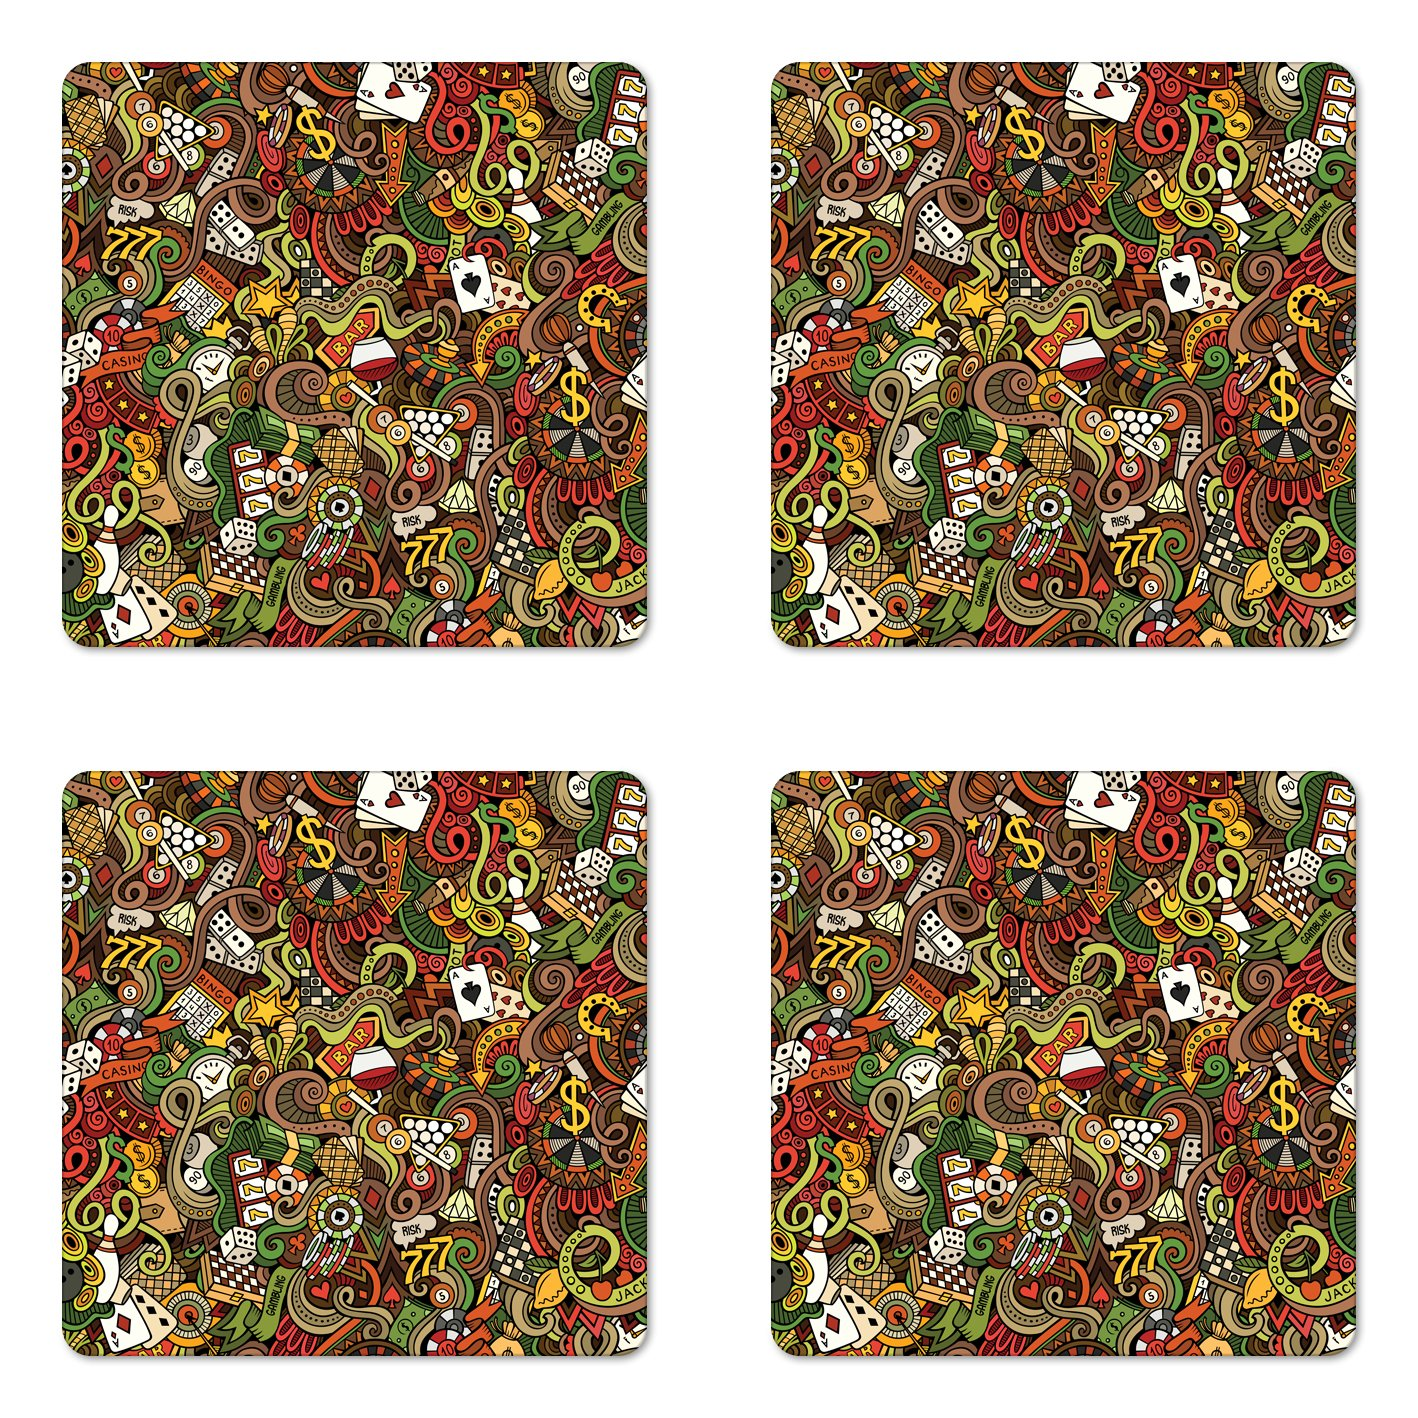 Ambesonne Casino Coaster Set of Four, Doodles Style Artwork of Bingo and Cards Excitement Checkers King Tambourine Vegas, Square Hardboard Gloss Coasters for Drinks, Multicolor